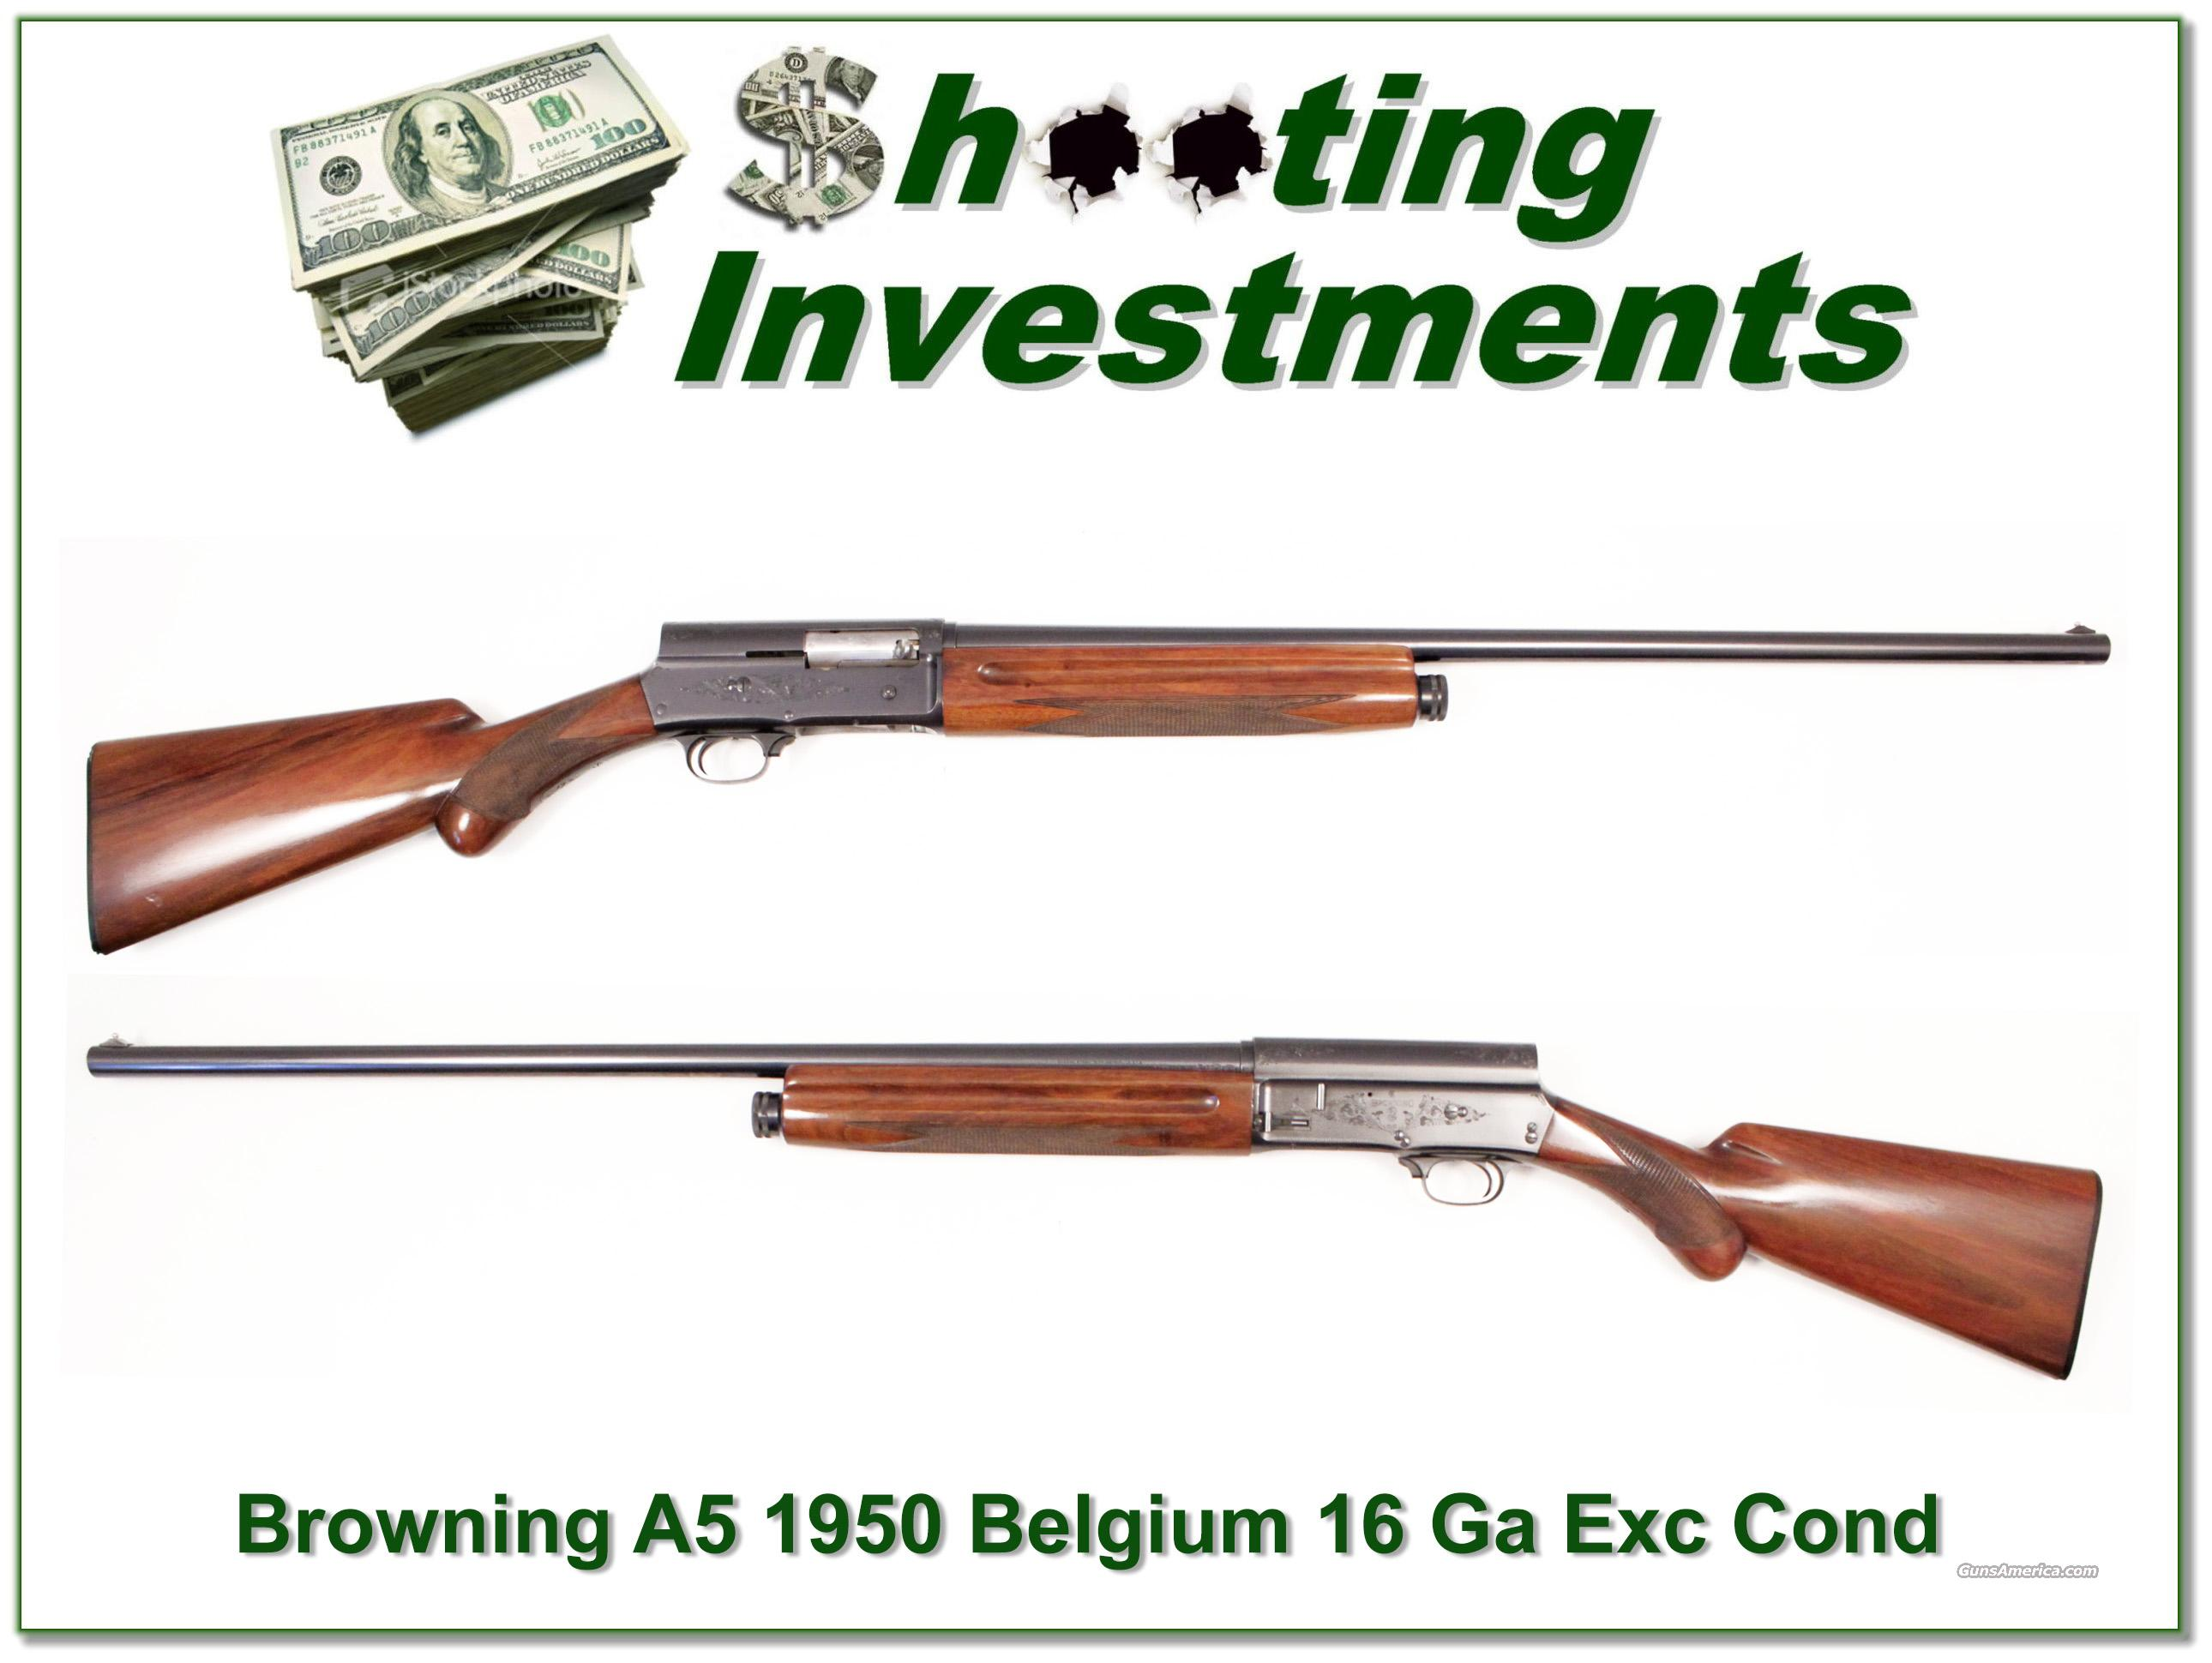 Browning A5 16 gauge 1950 Belgium Exc Cond  Guns > Shotguns > Browning Shotguns > Autoloaders > Hunting